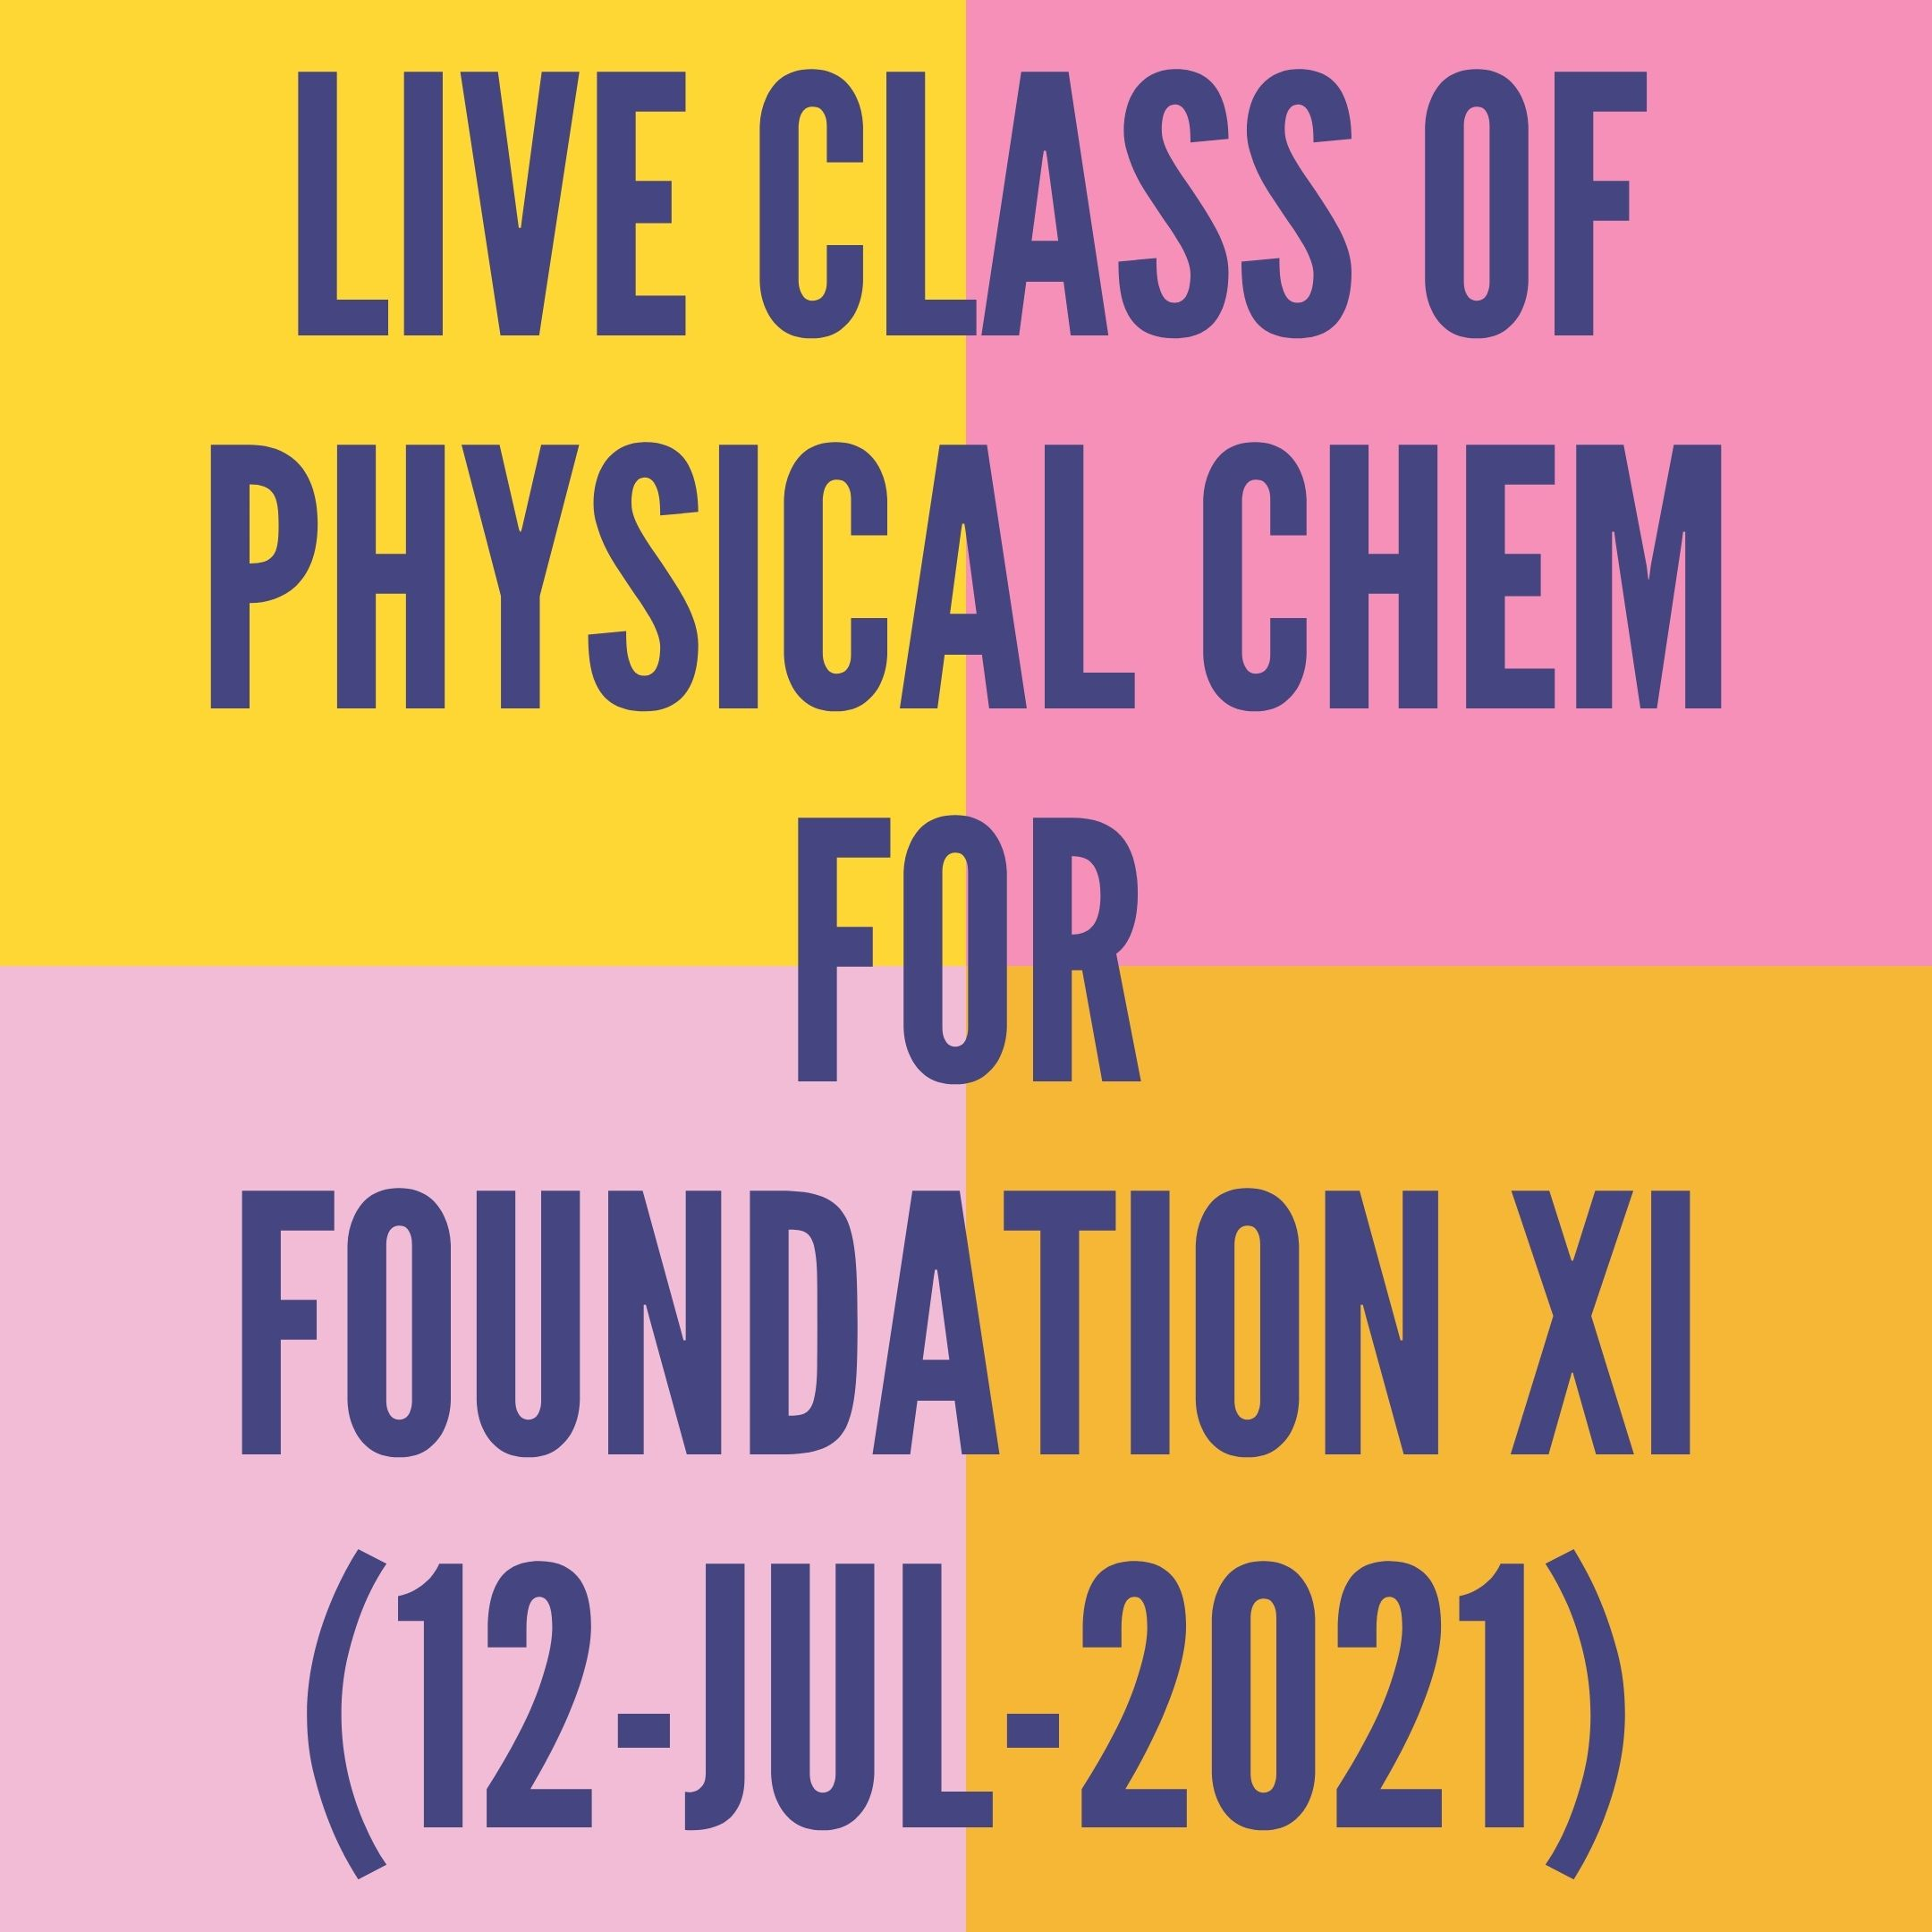 LIVE CLASS OF PHYSICAL CHEMISTRY FOR FOUNDATION XI (12-JUL-2021) REDOX REACTION